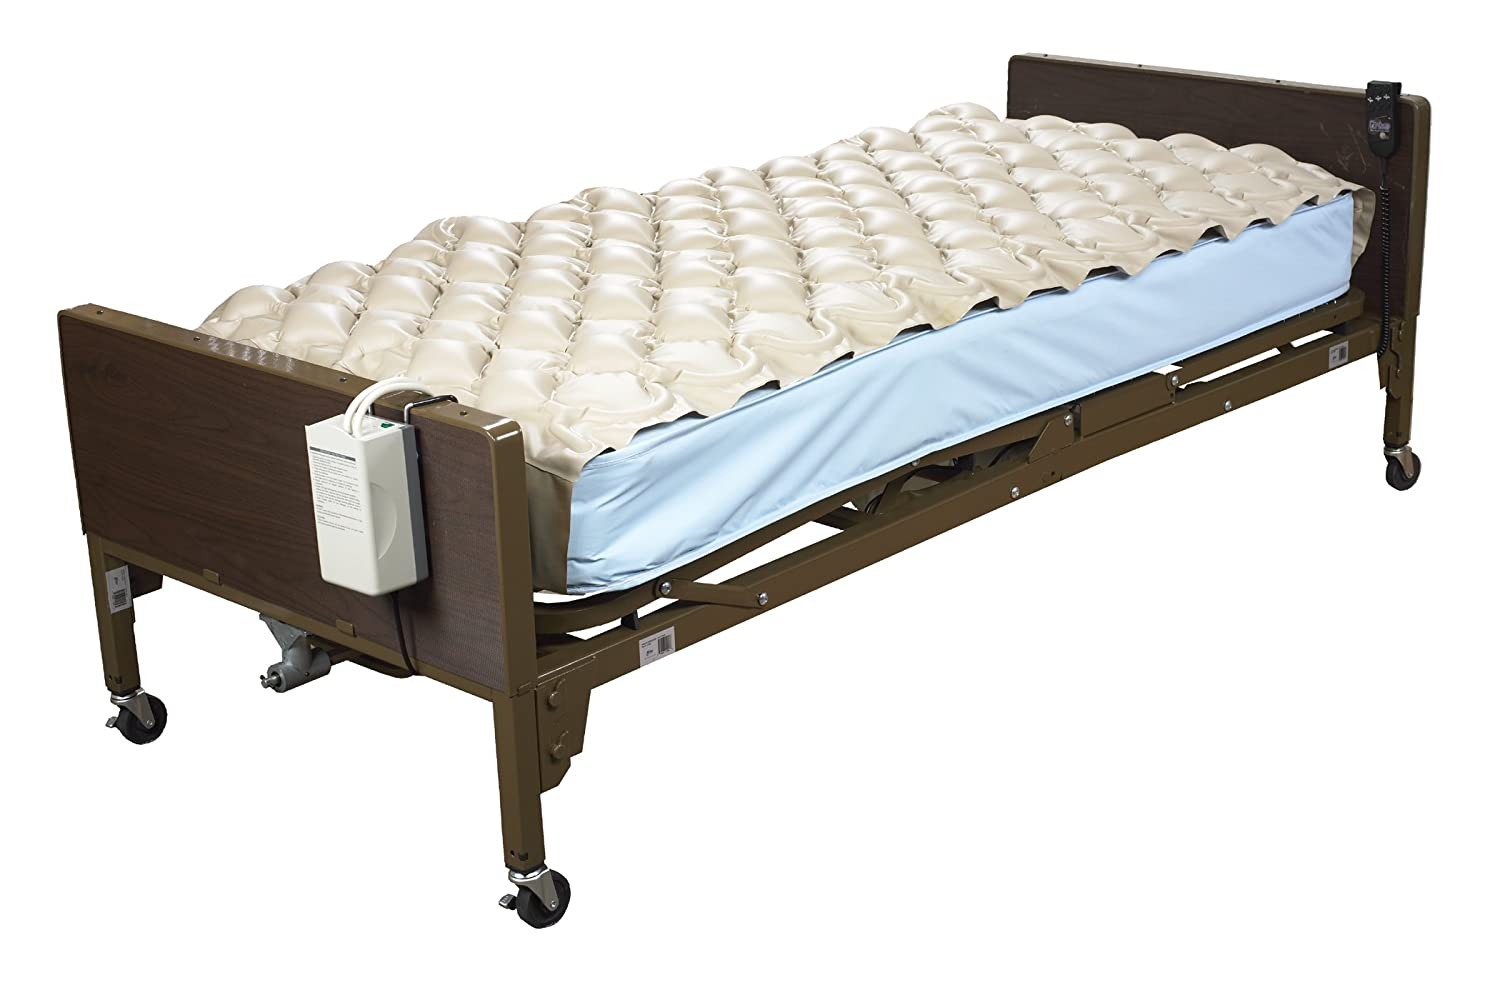 The Best Air Mattress For Hospital Beds Sleeping With Air